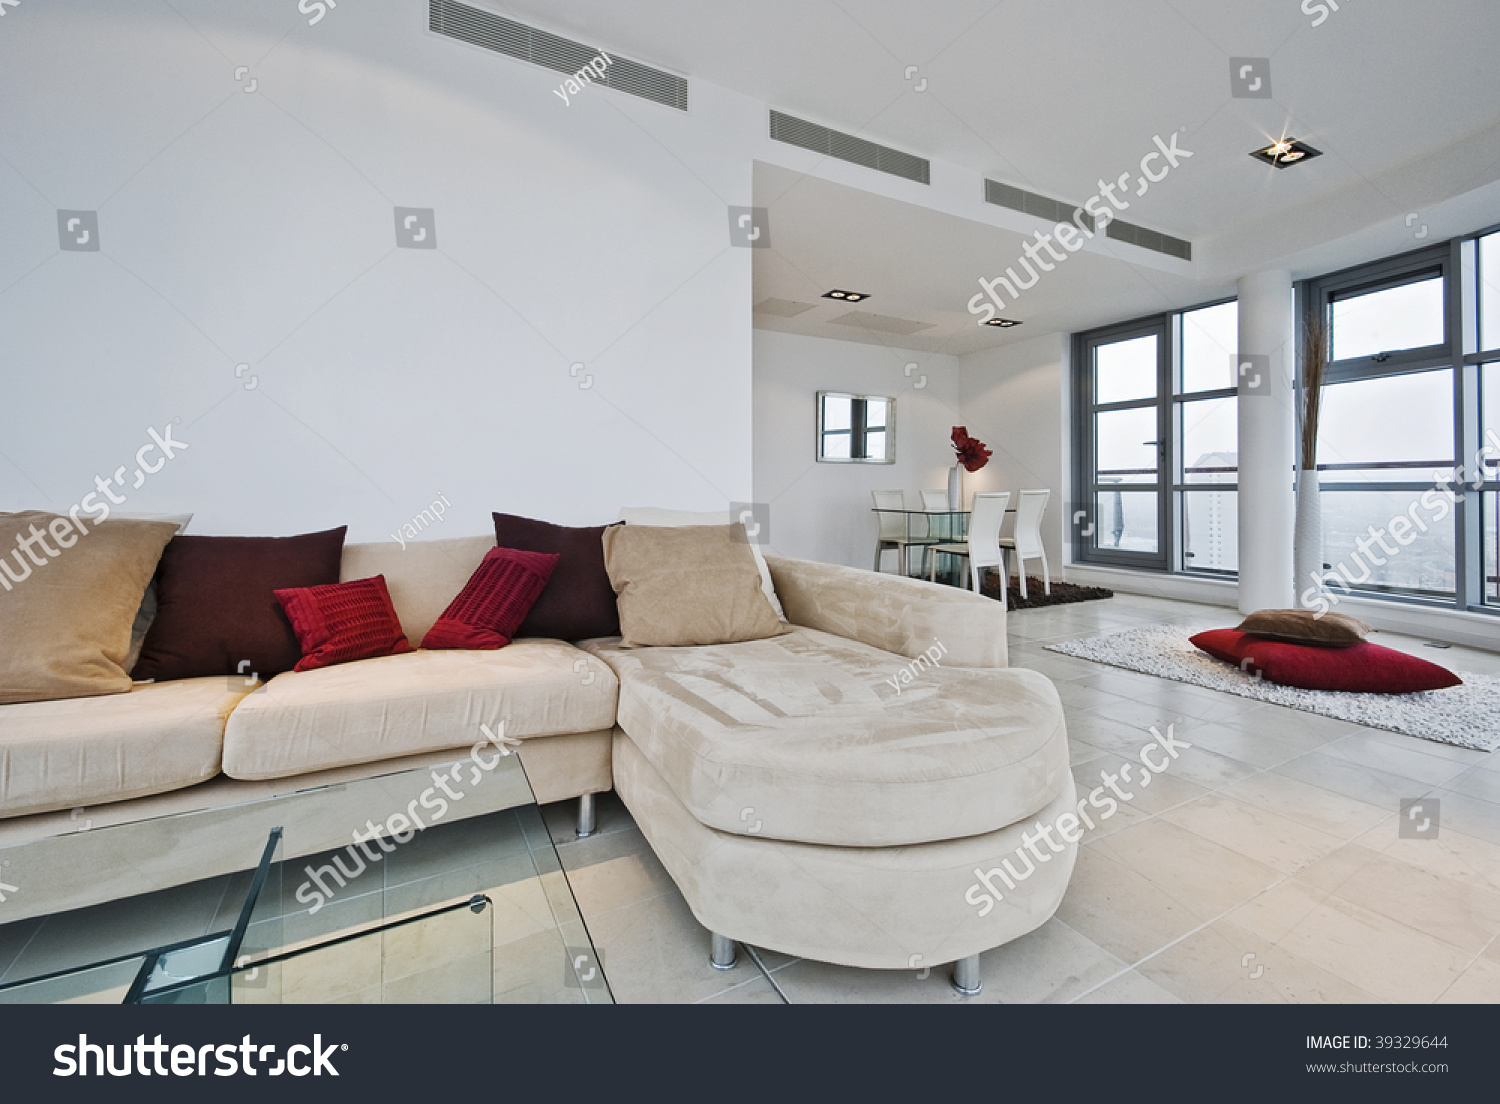 Massive Penthouse Living Room L Shaped Stock Photo & Image (Royalty ...